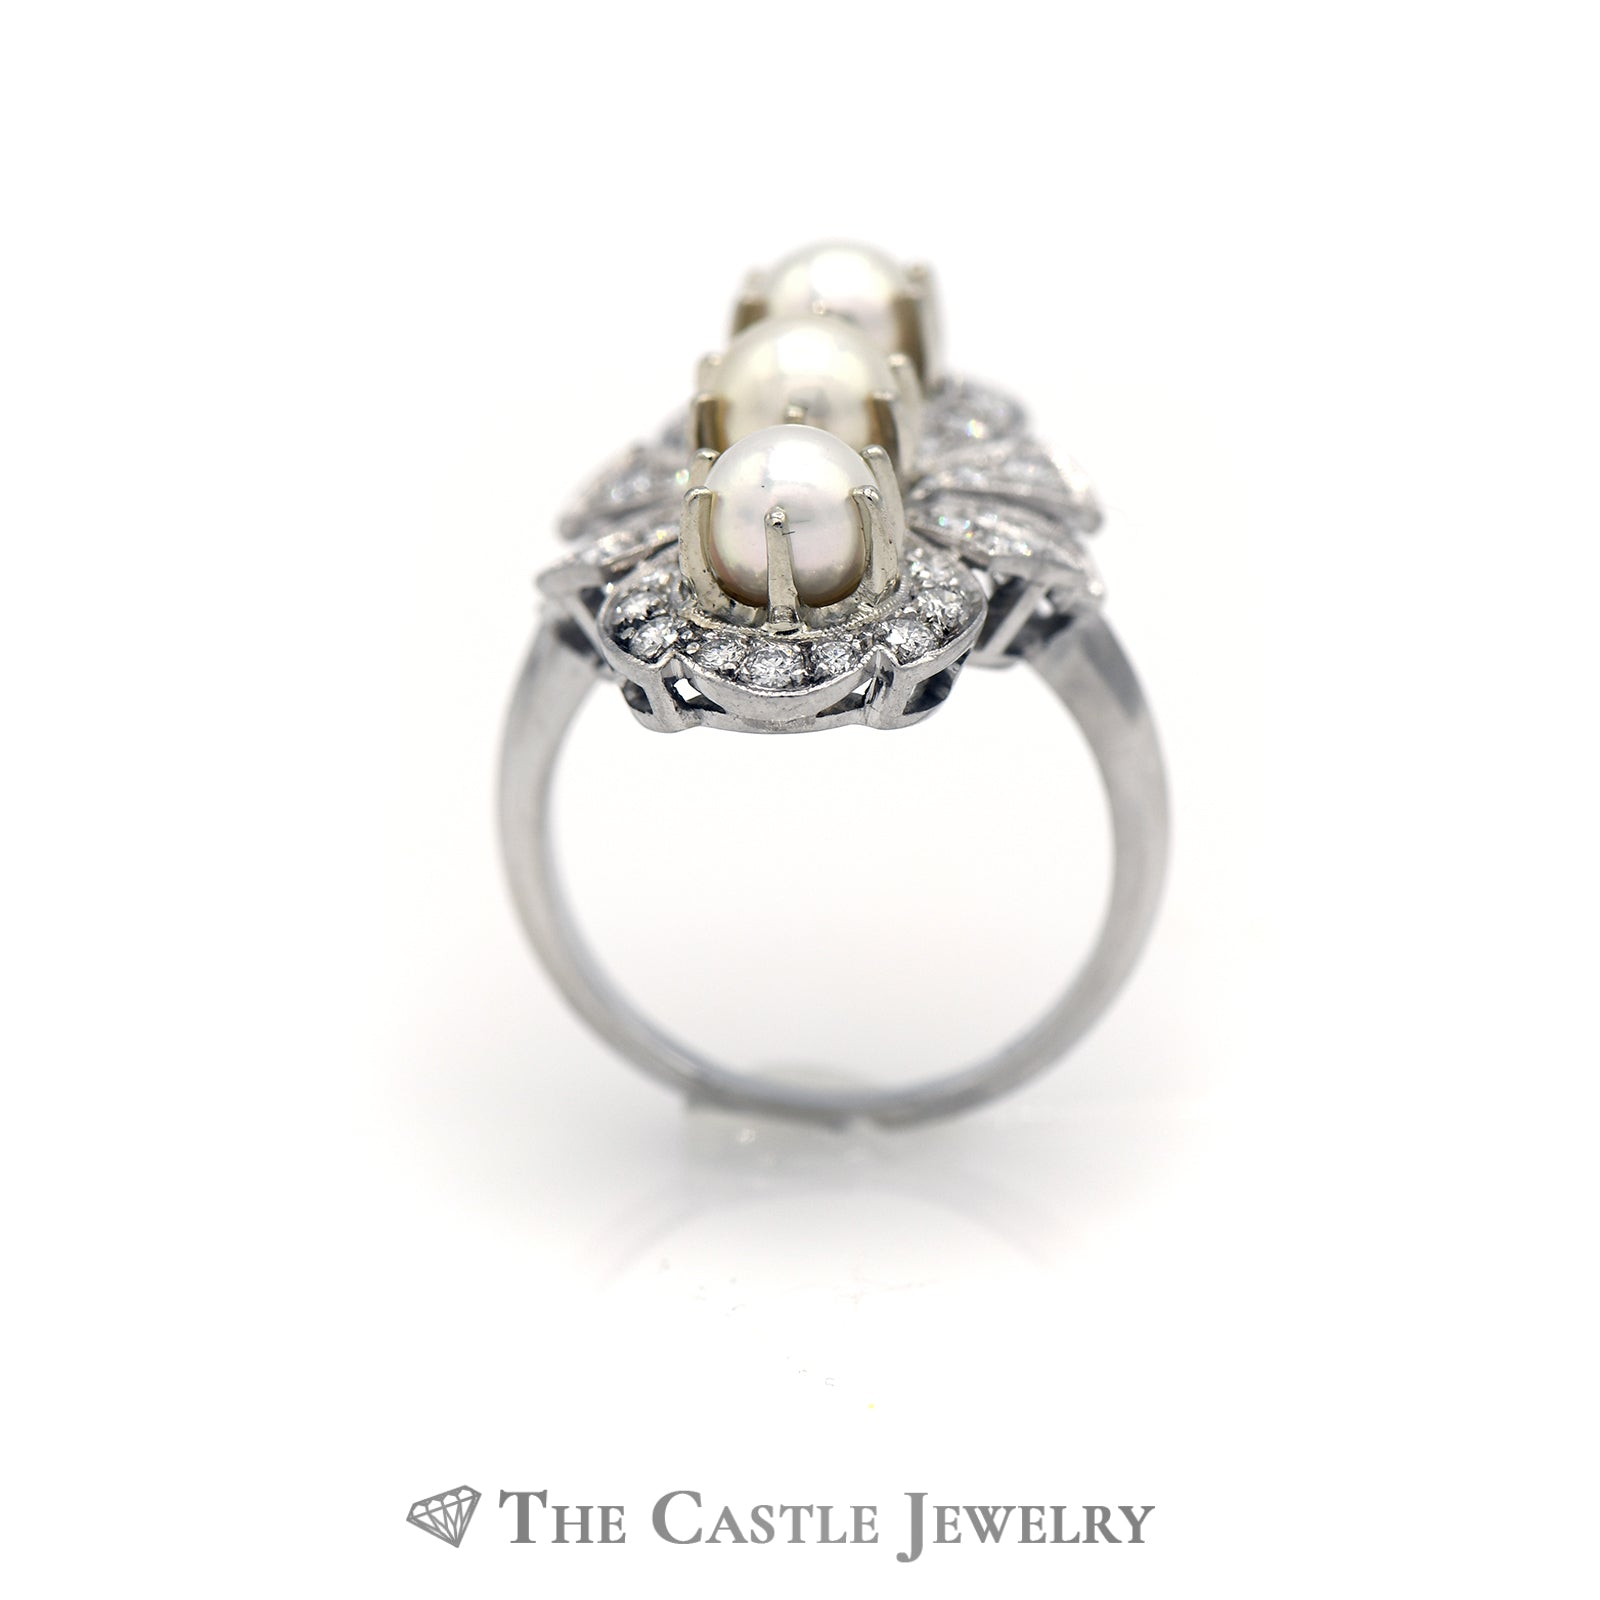 Stunning Triple Pearl Ring with 1cttw Diamonds in Antique Design Mounting-1